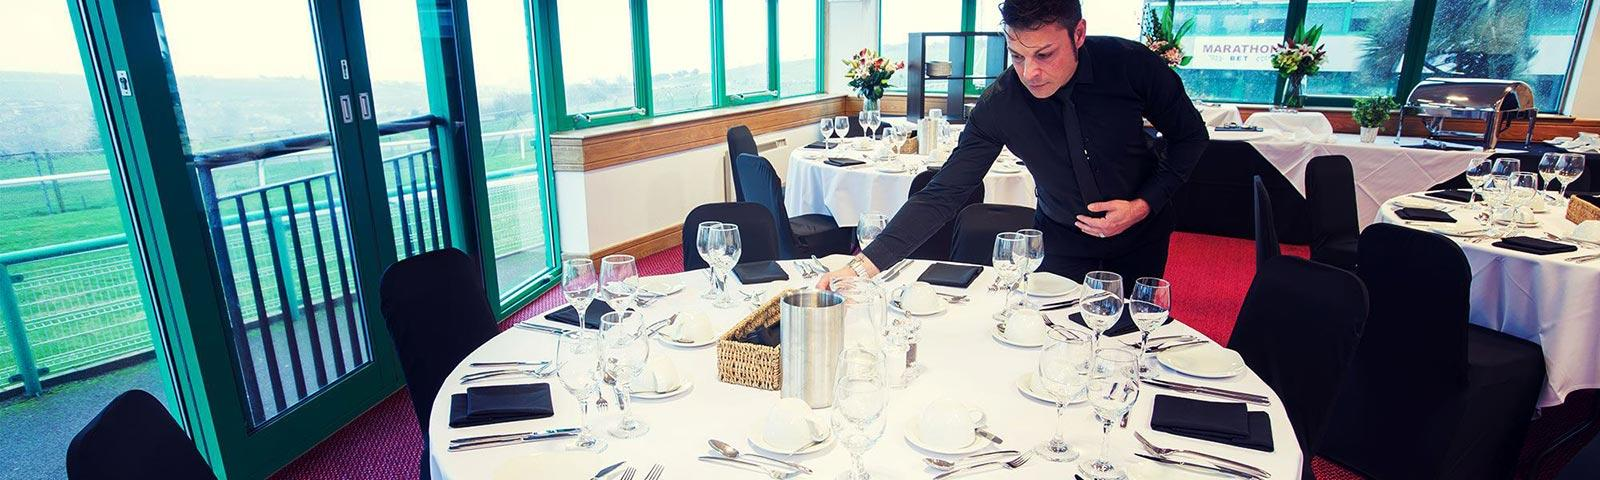 Waiter setting up a large round table